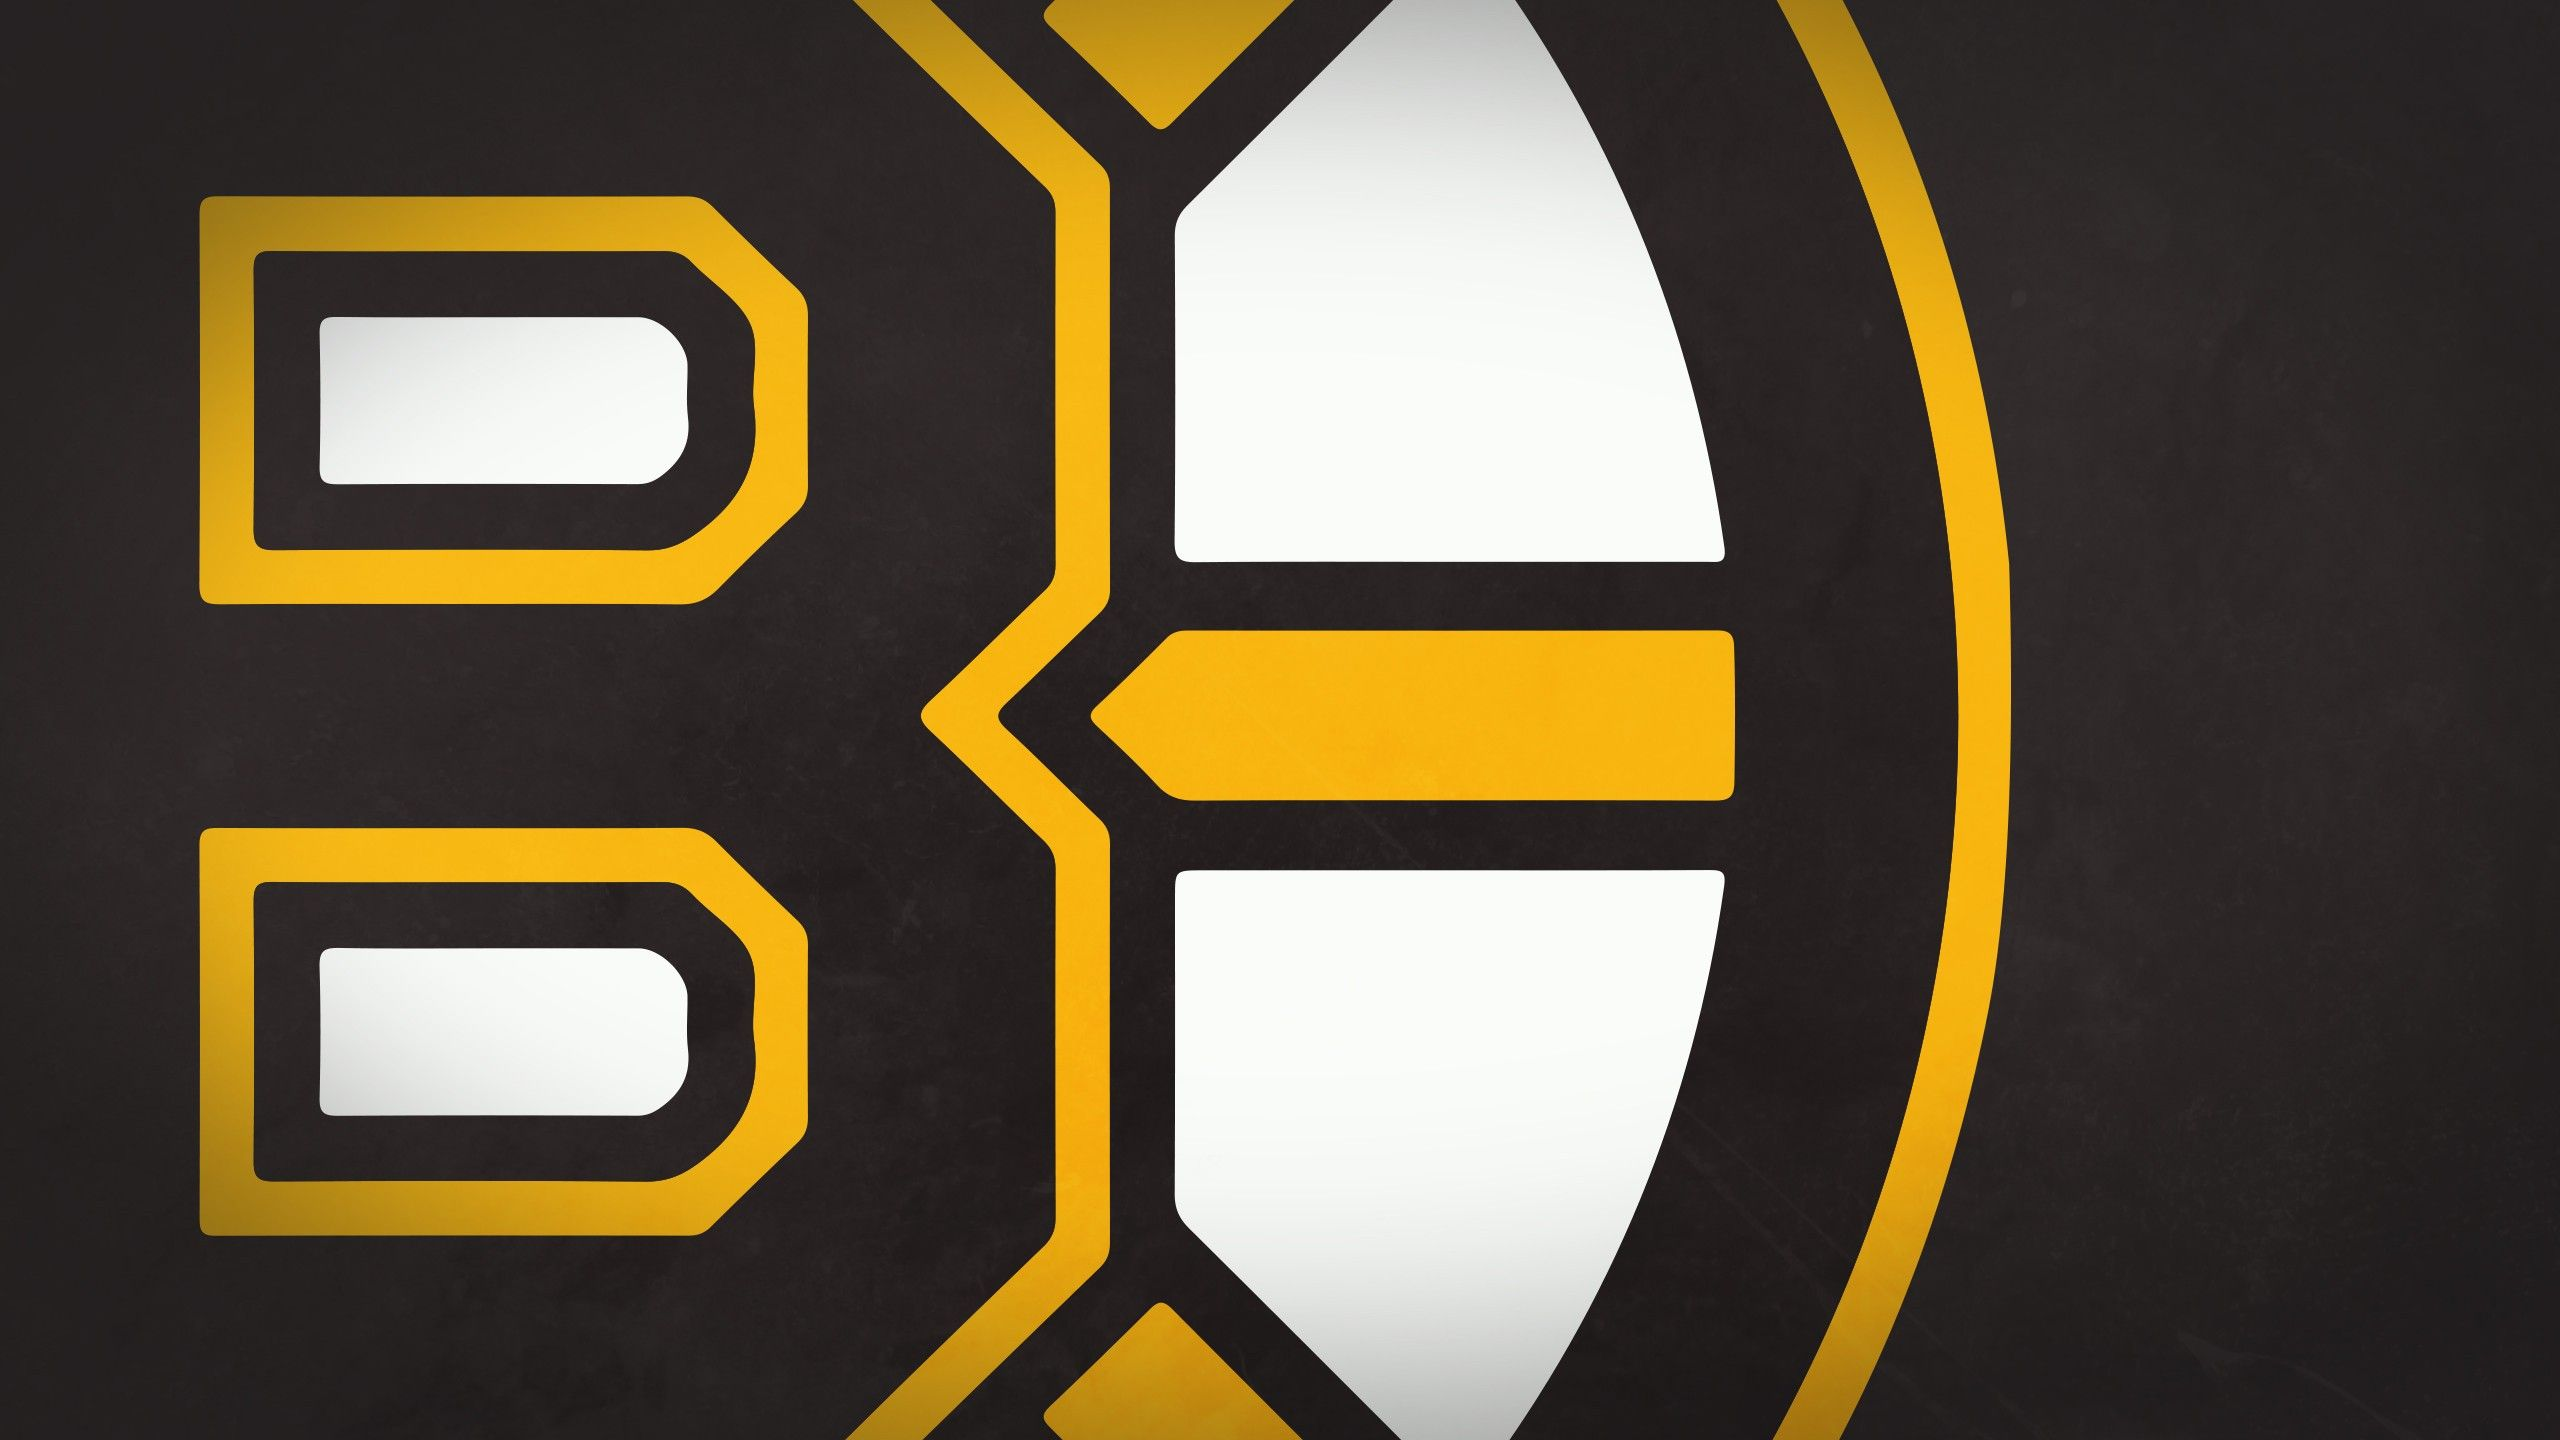 Boston Bruins 02.png